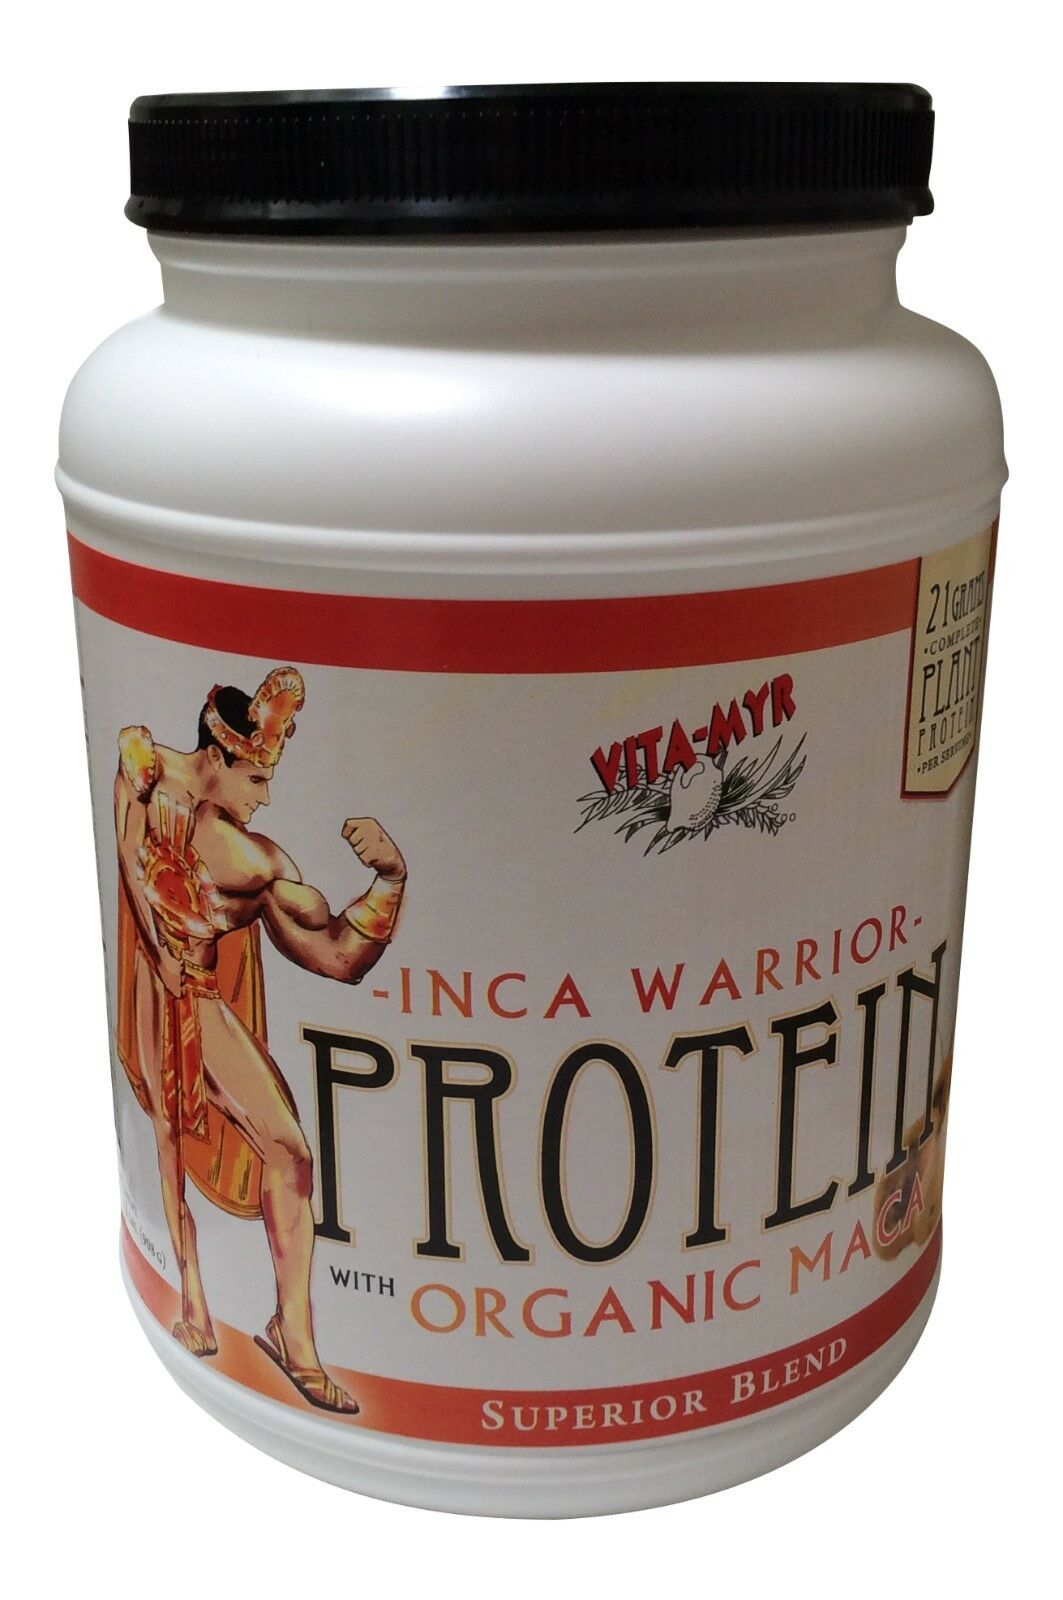 Vanilla PROTEIN Powder Build & Retain Muscle, Stamina Energy, Vitality, Stamina Muscle, w/ Maca 105445